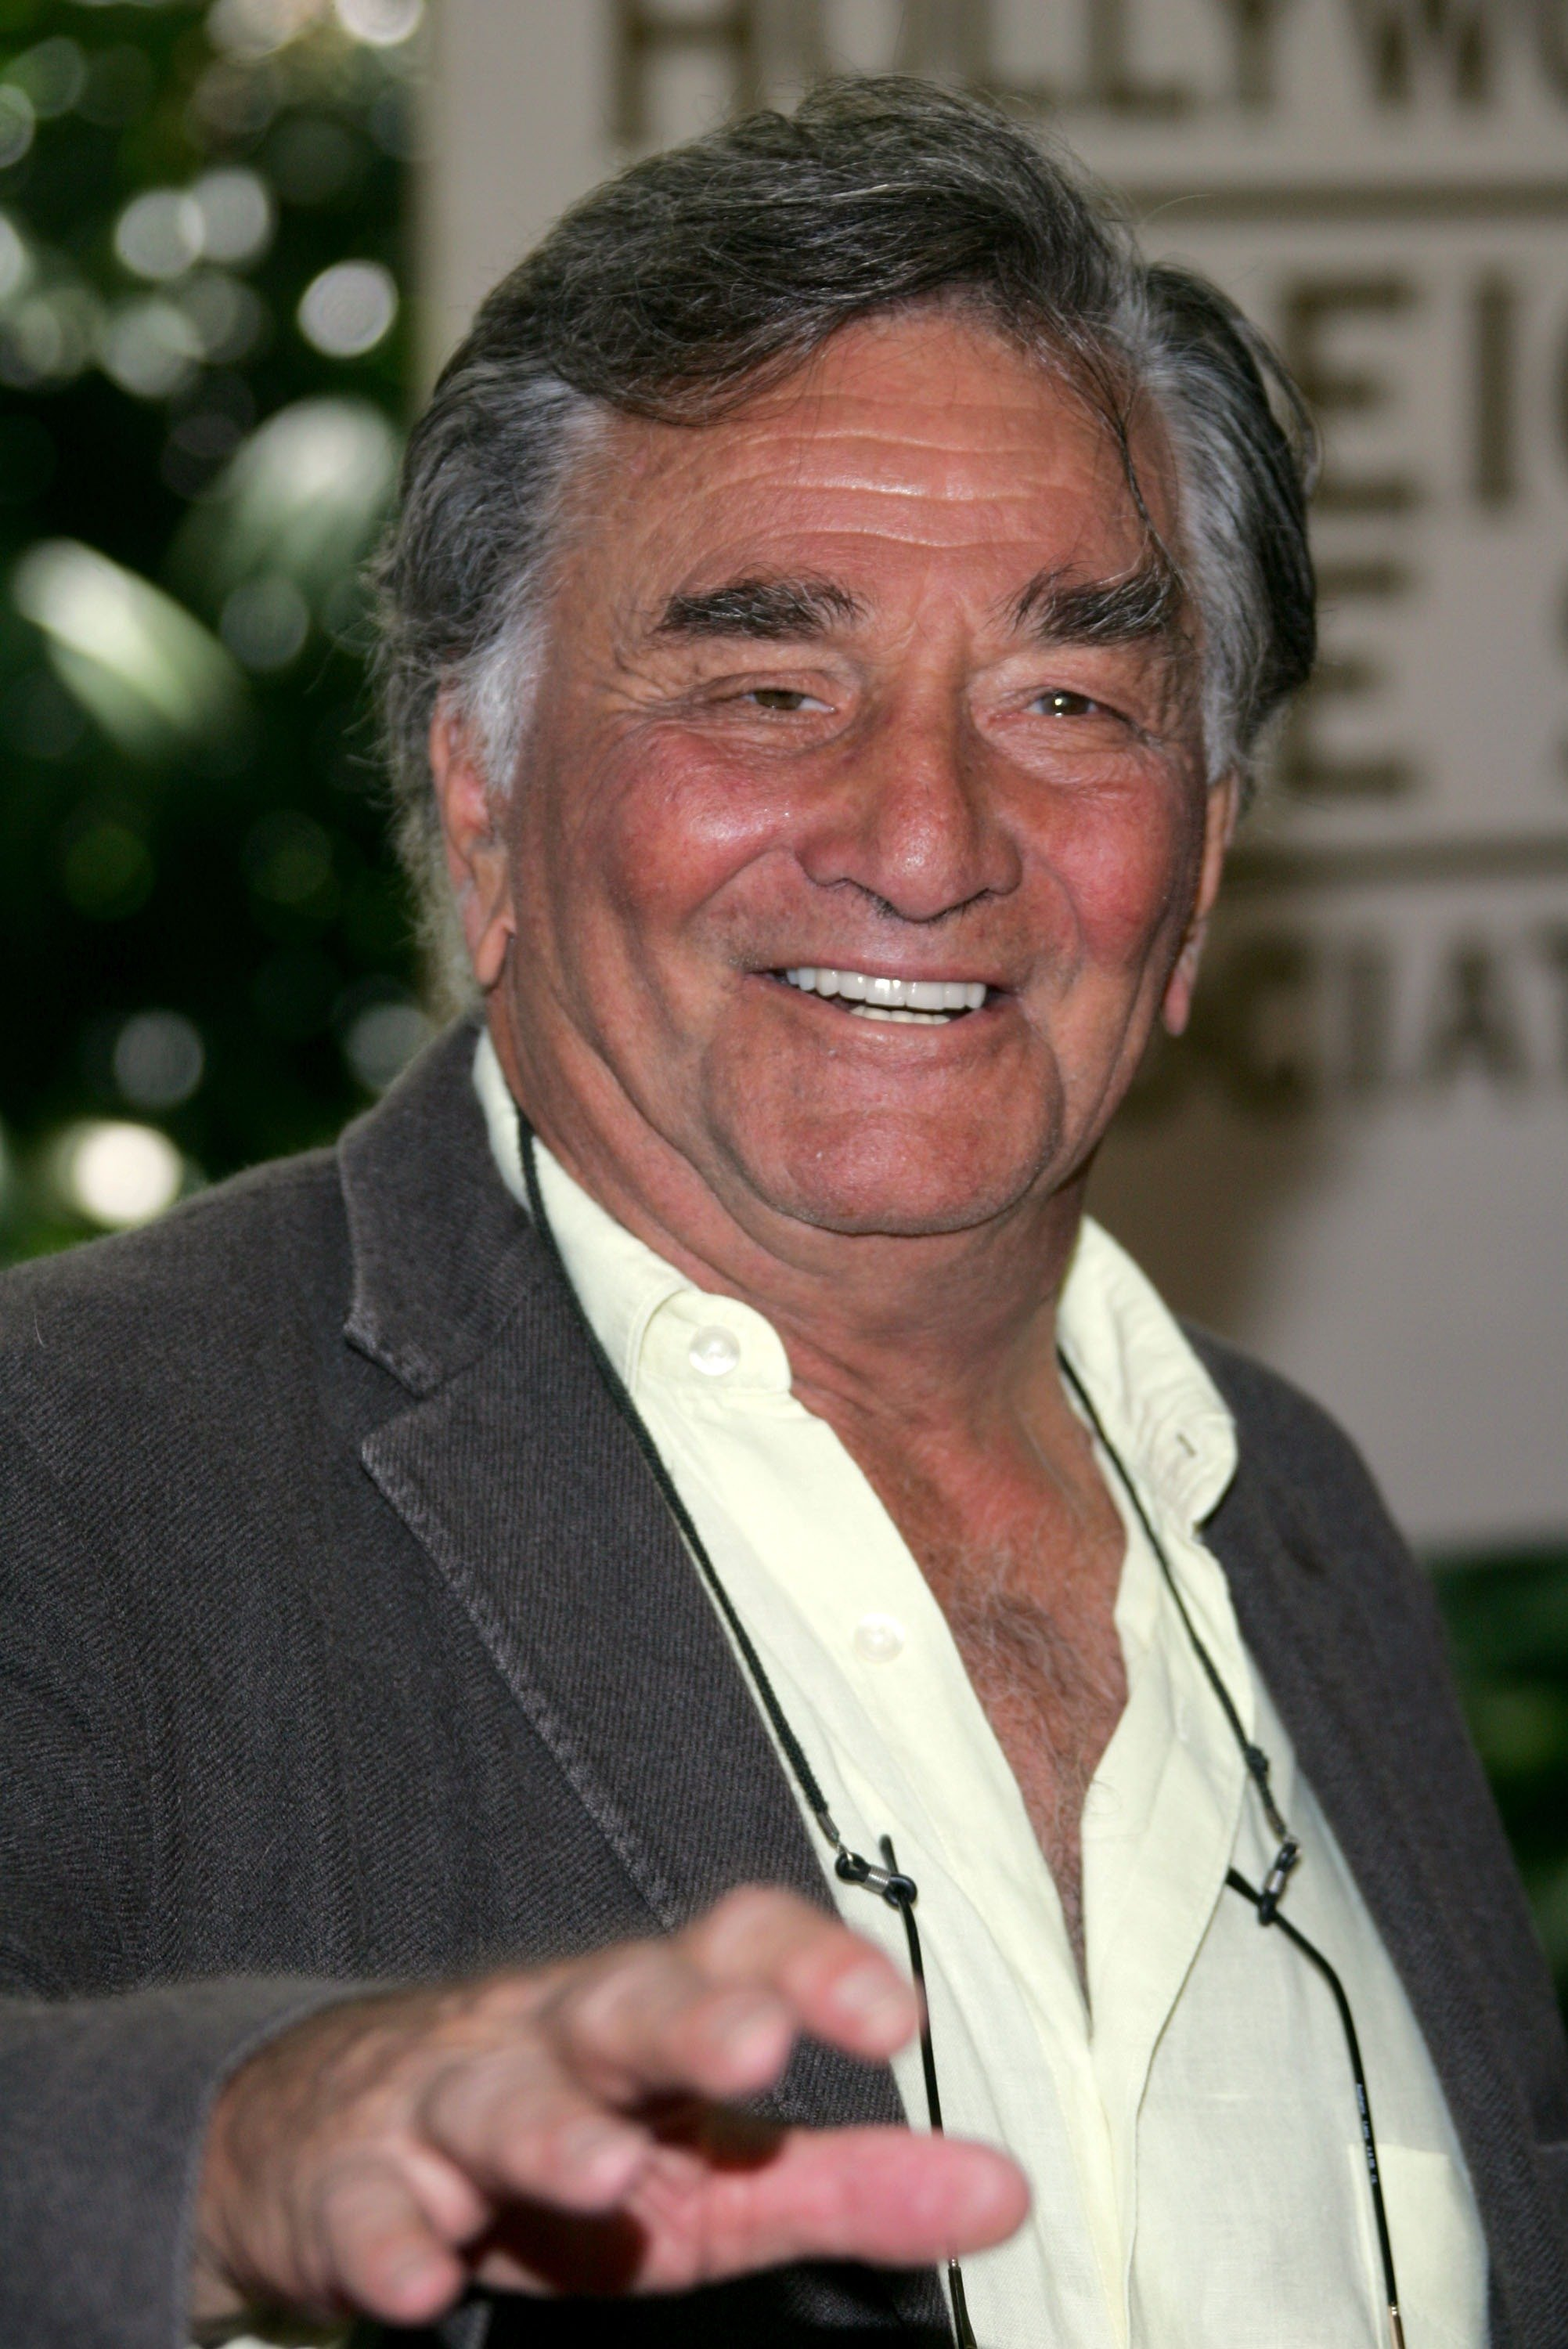 Peter Falk on August 9, 2007, in Beverly Hills, California. | Source: Getty Images